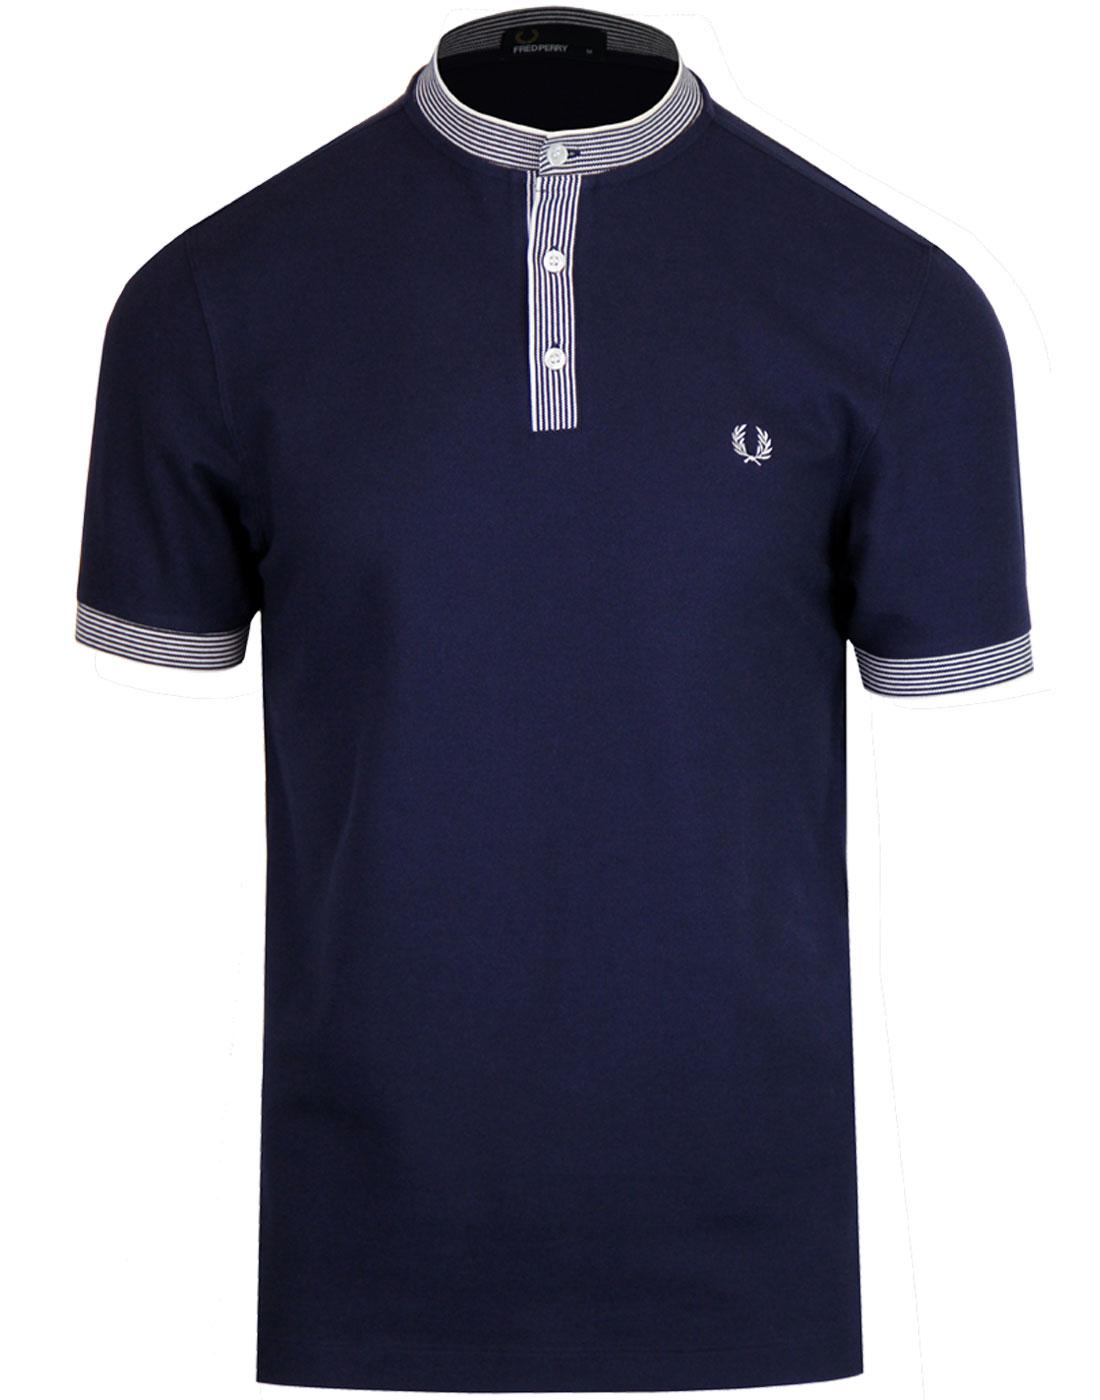 FRED PERRY Retro Mod Indie Henley Pique Shirt